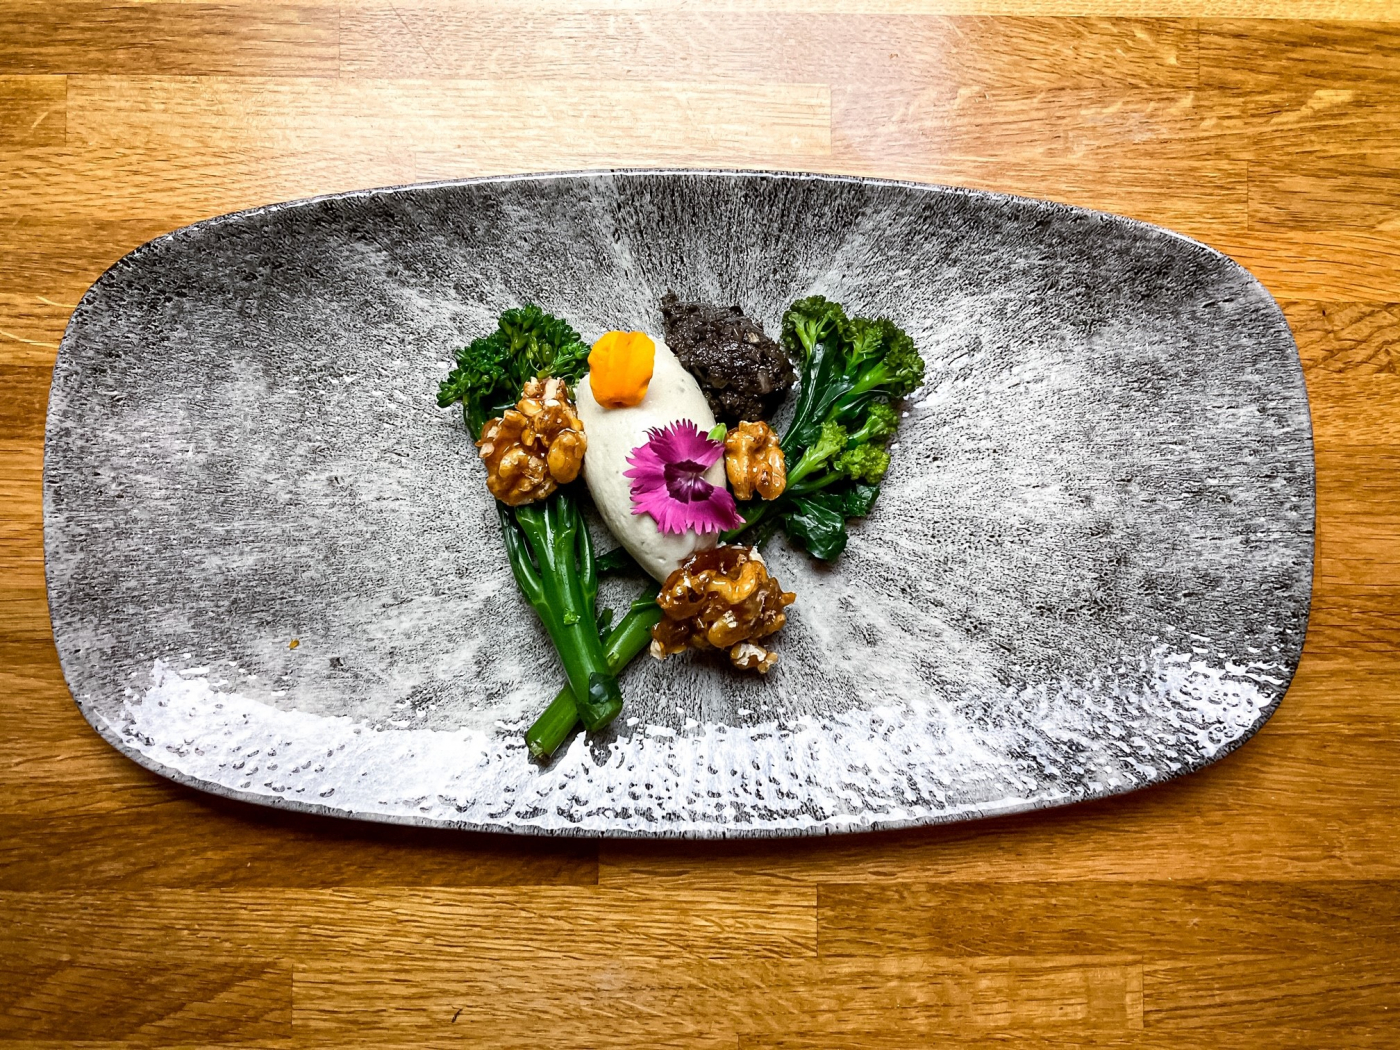 Crispy poached egg, tenderstem broccoli, roquefort mousse, candied walnuts, tapenade, lemon & basil dressing - 1